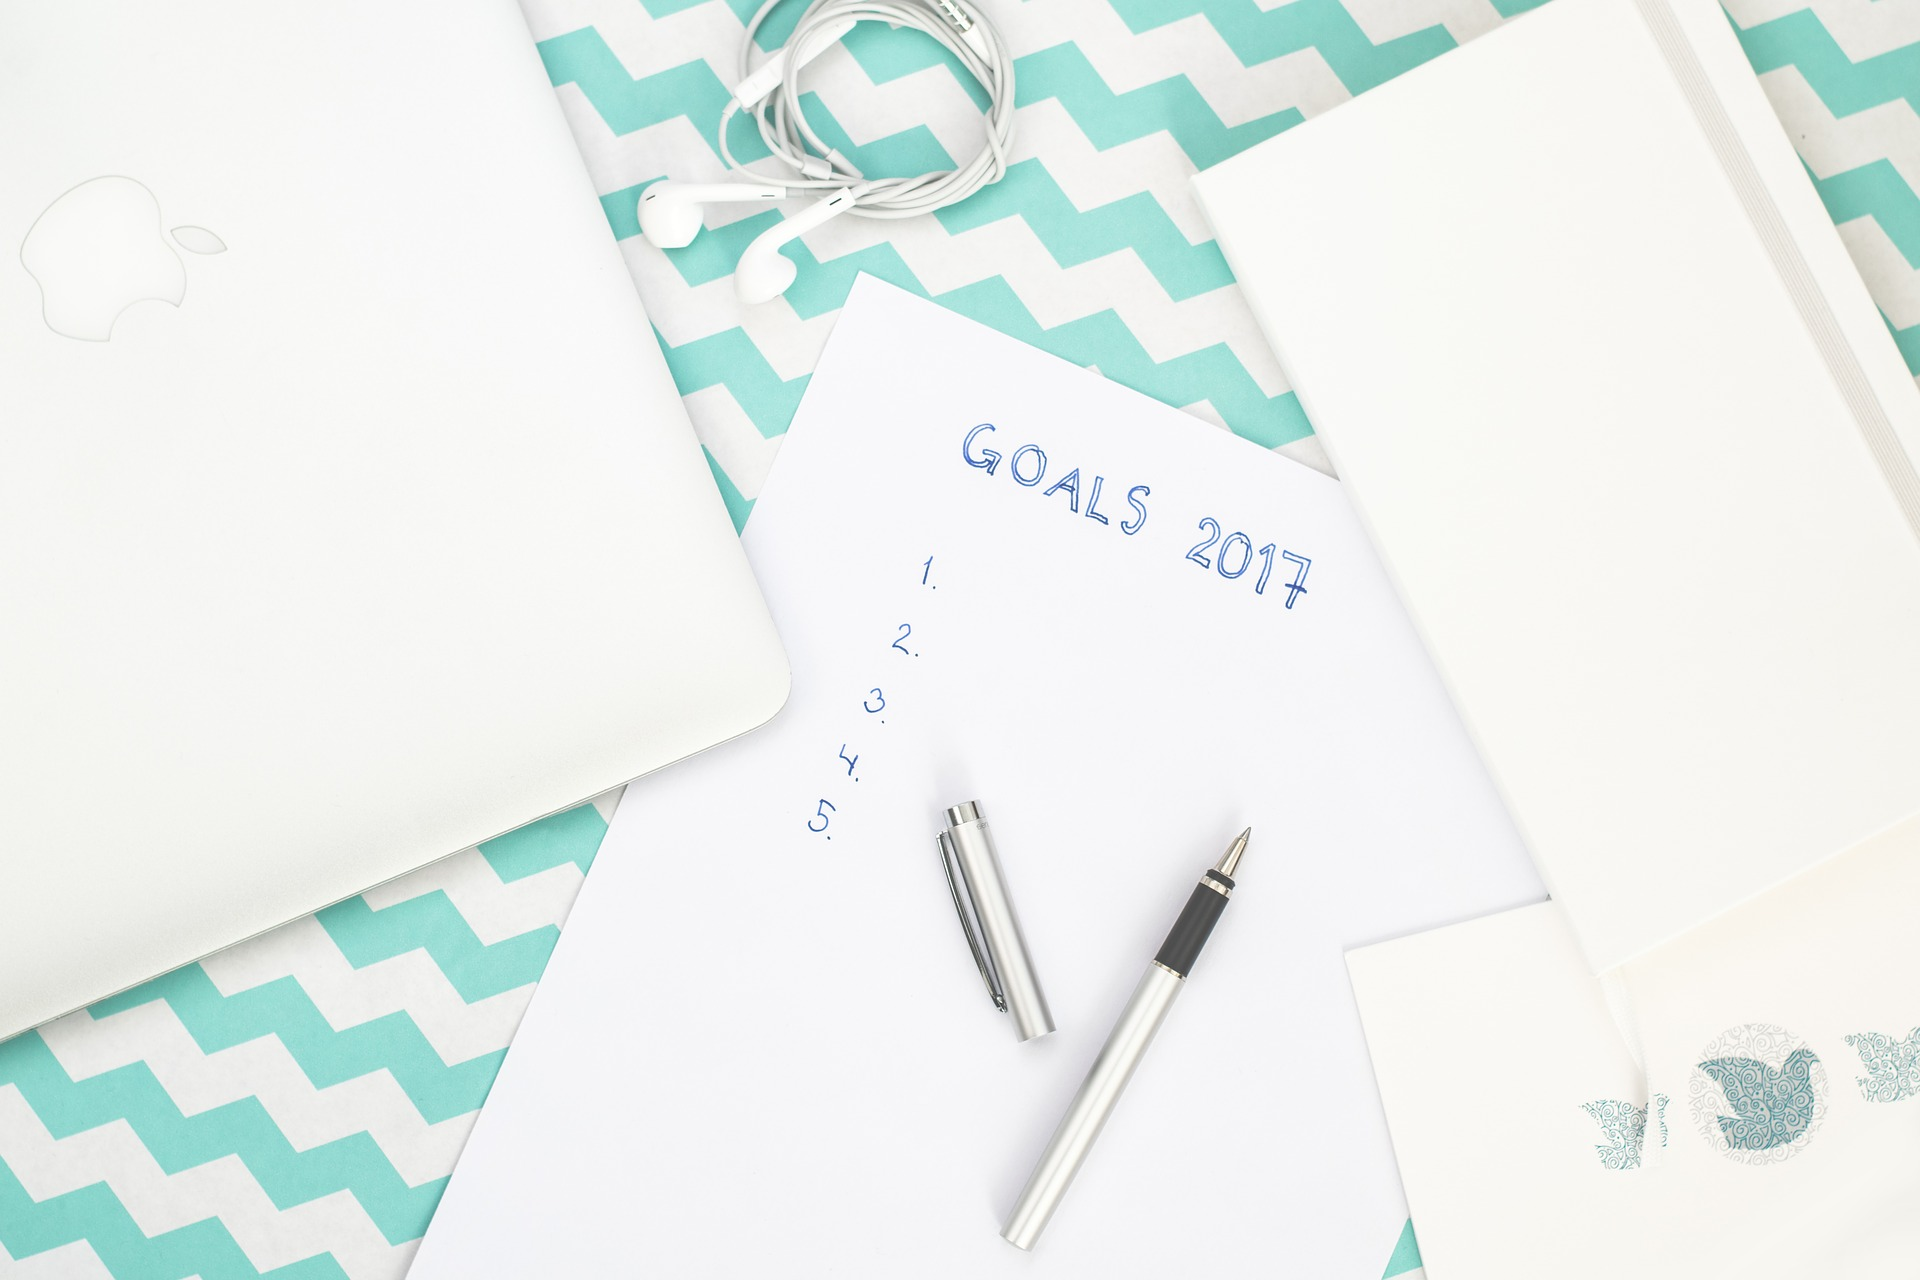 How to Achieve Your New Year's Resolutions – Getting Ready for Jan 1st